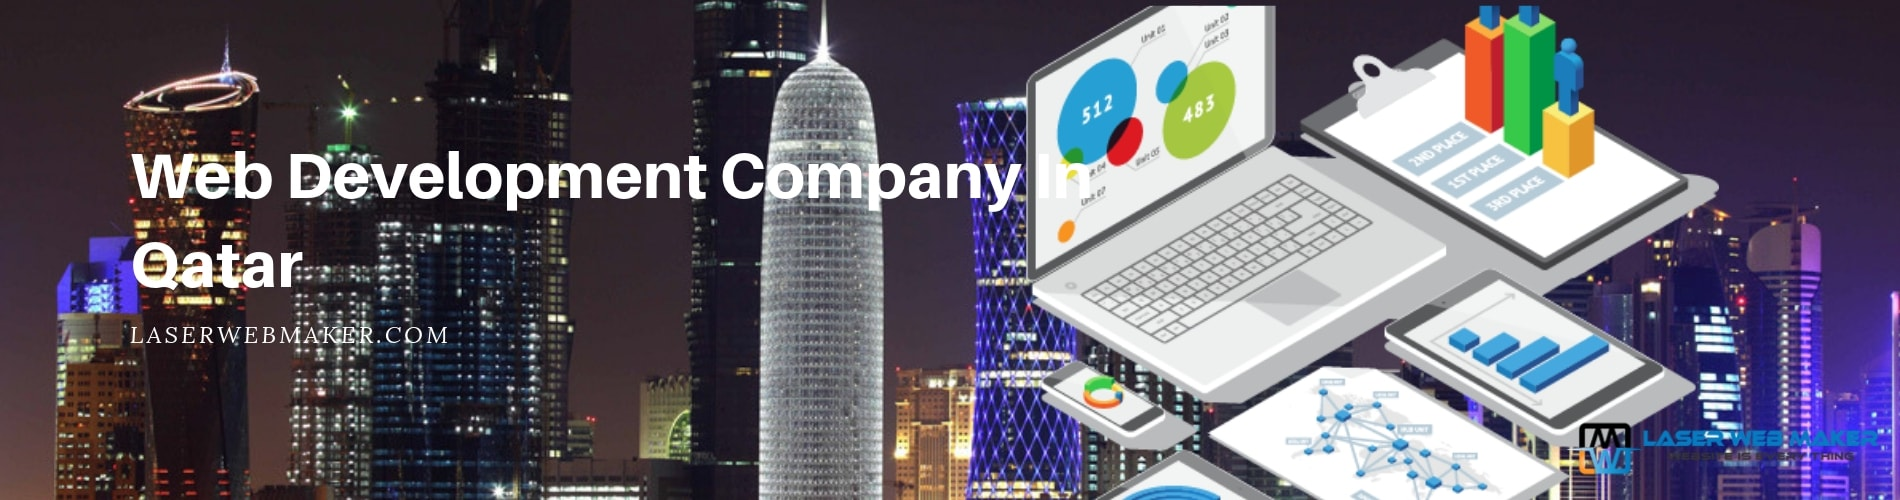 web development company in doha,qatar